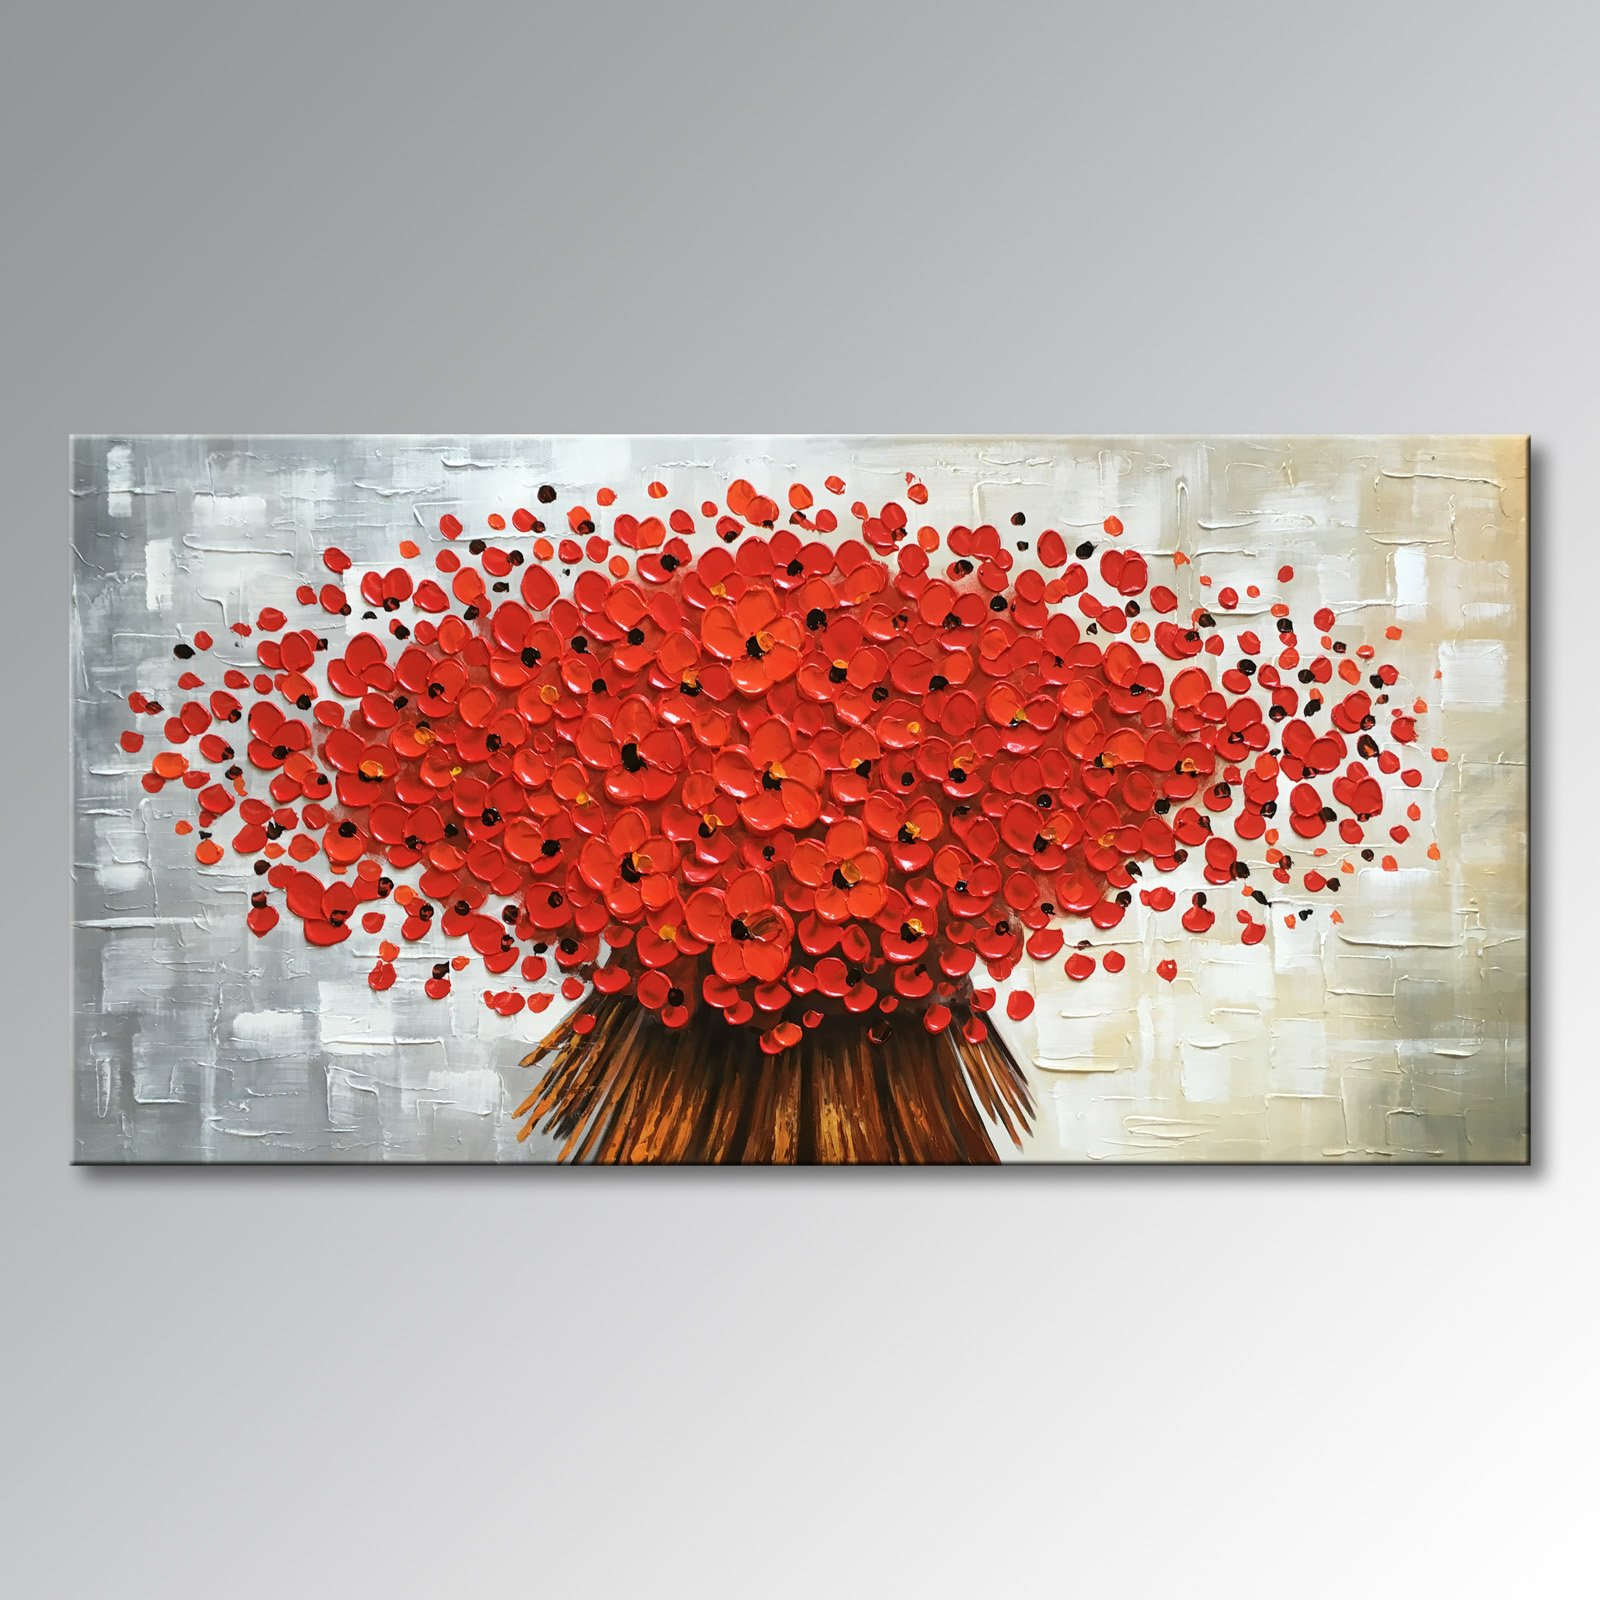 Winpeak Art Large Hand Painted Abstract Canvas Wall Art Modern Textured Red Flower Oil Paintings Contemporary Artwork Floral Hangings Stretched And Framed Ready to Hang (56''W x 28''H, Red) by Winpeak Art